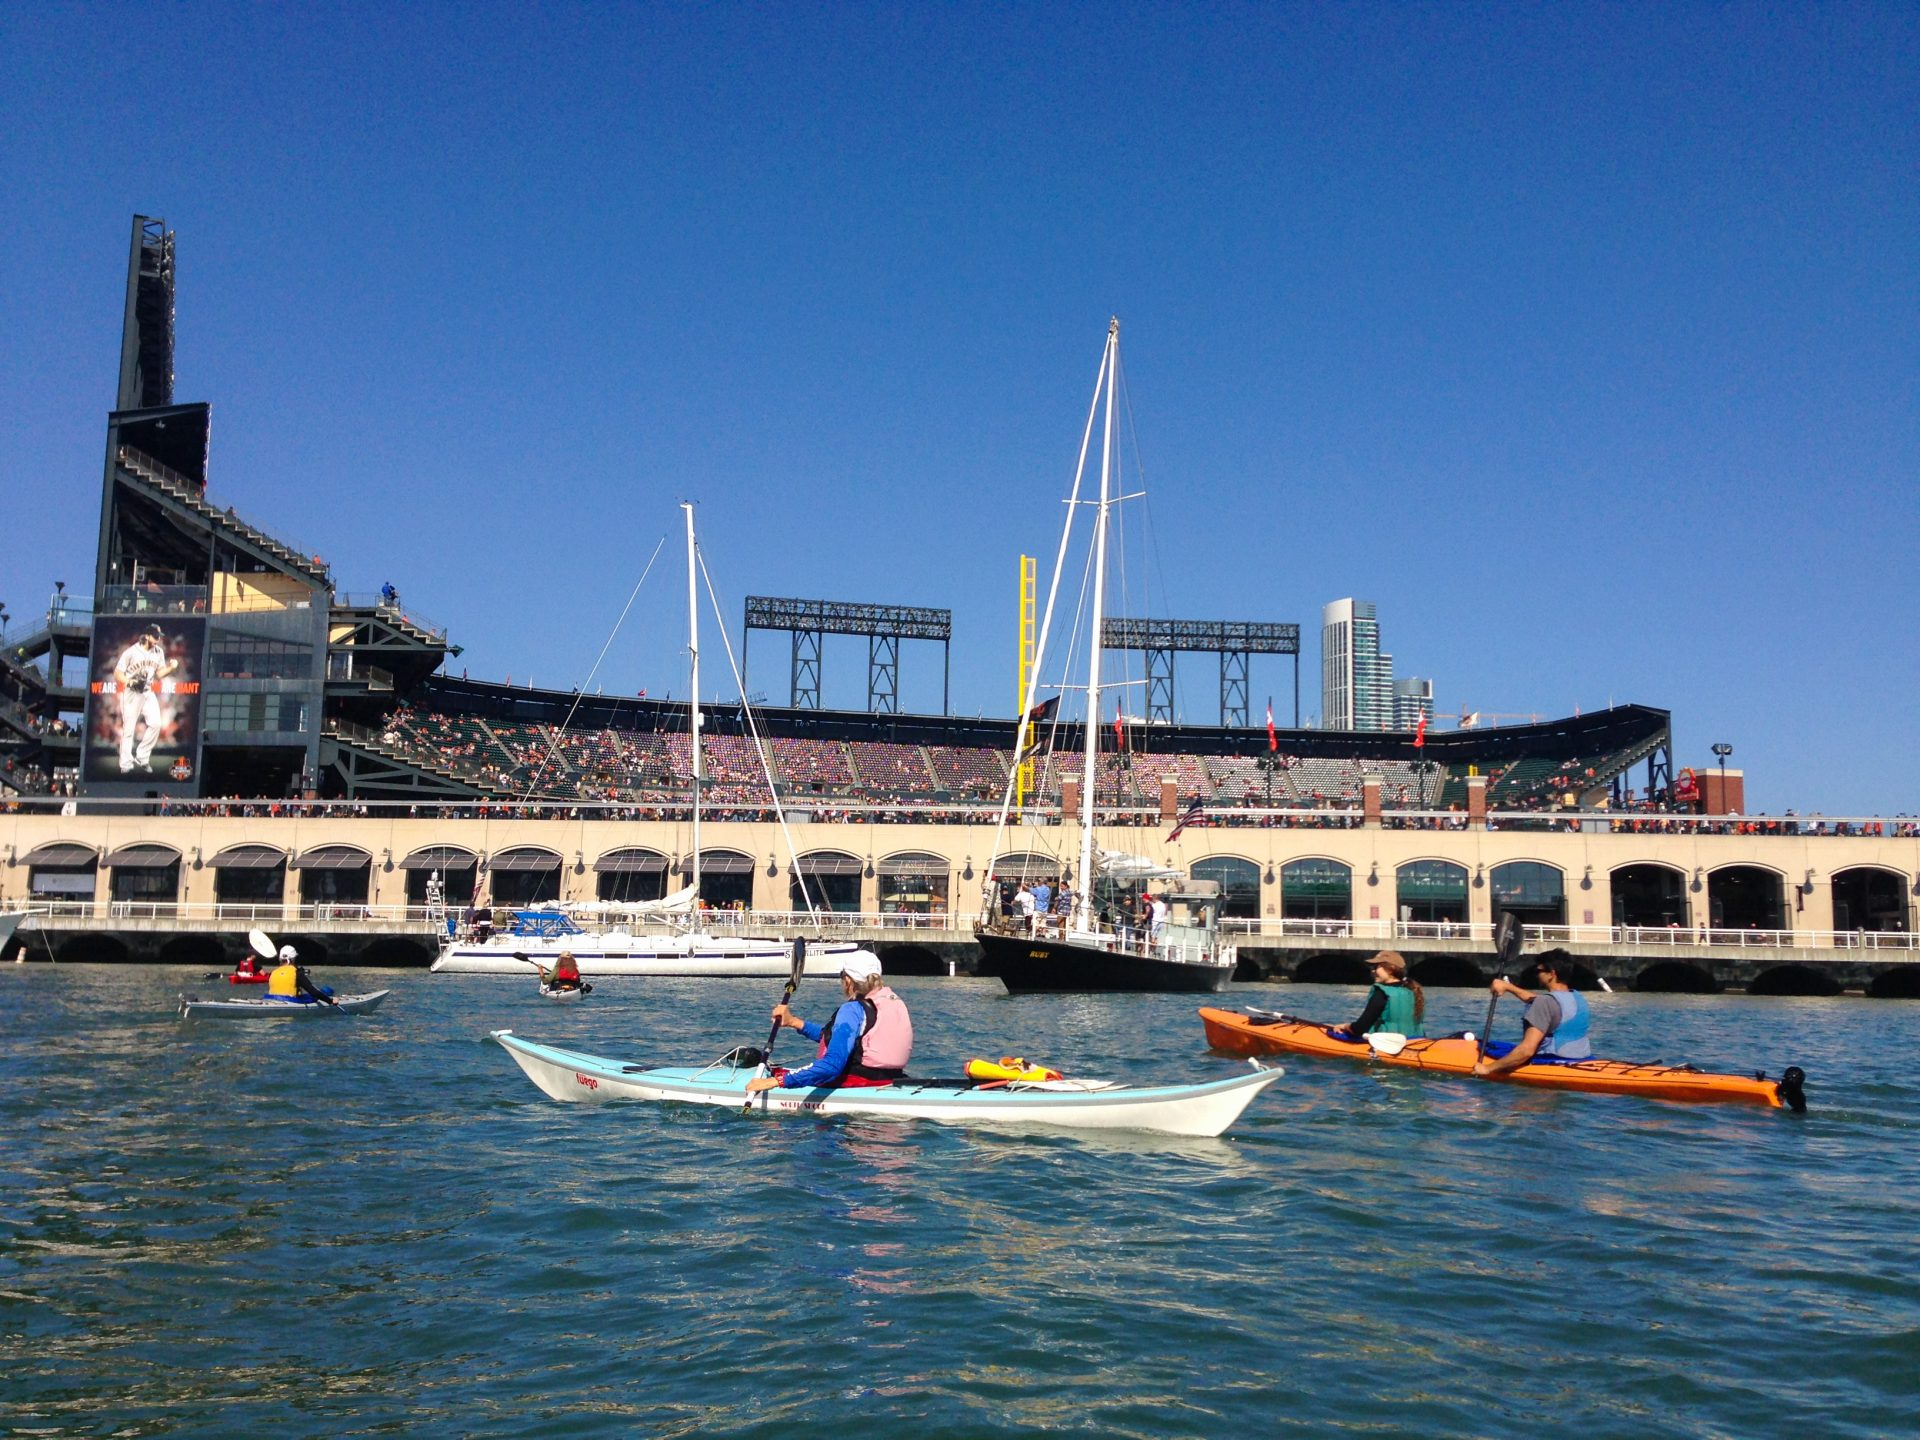 Kayakers and sailboats in front of Giants ballpark